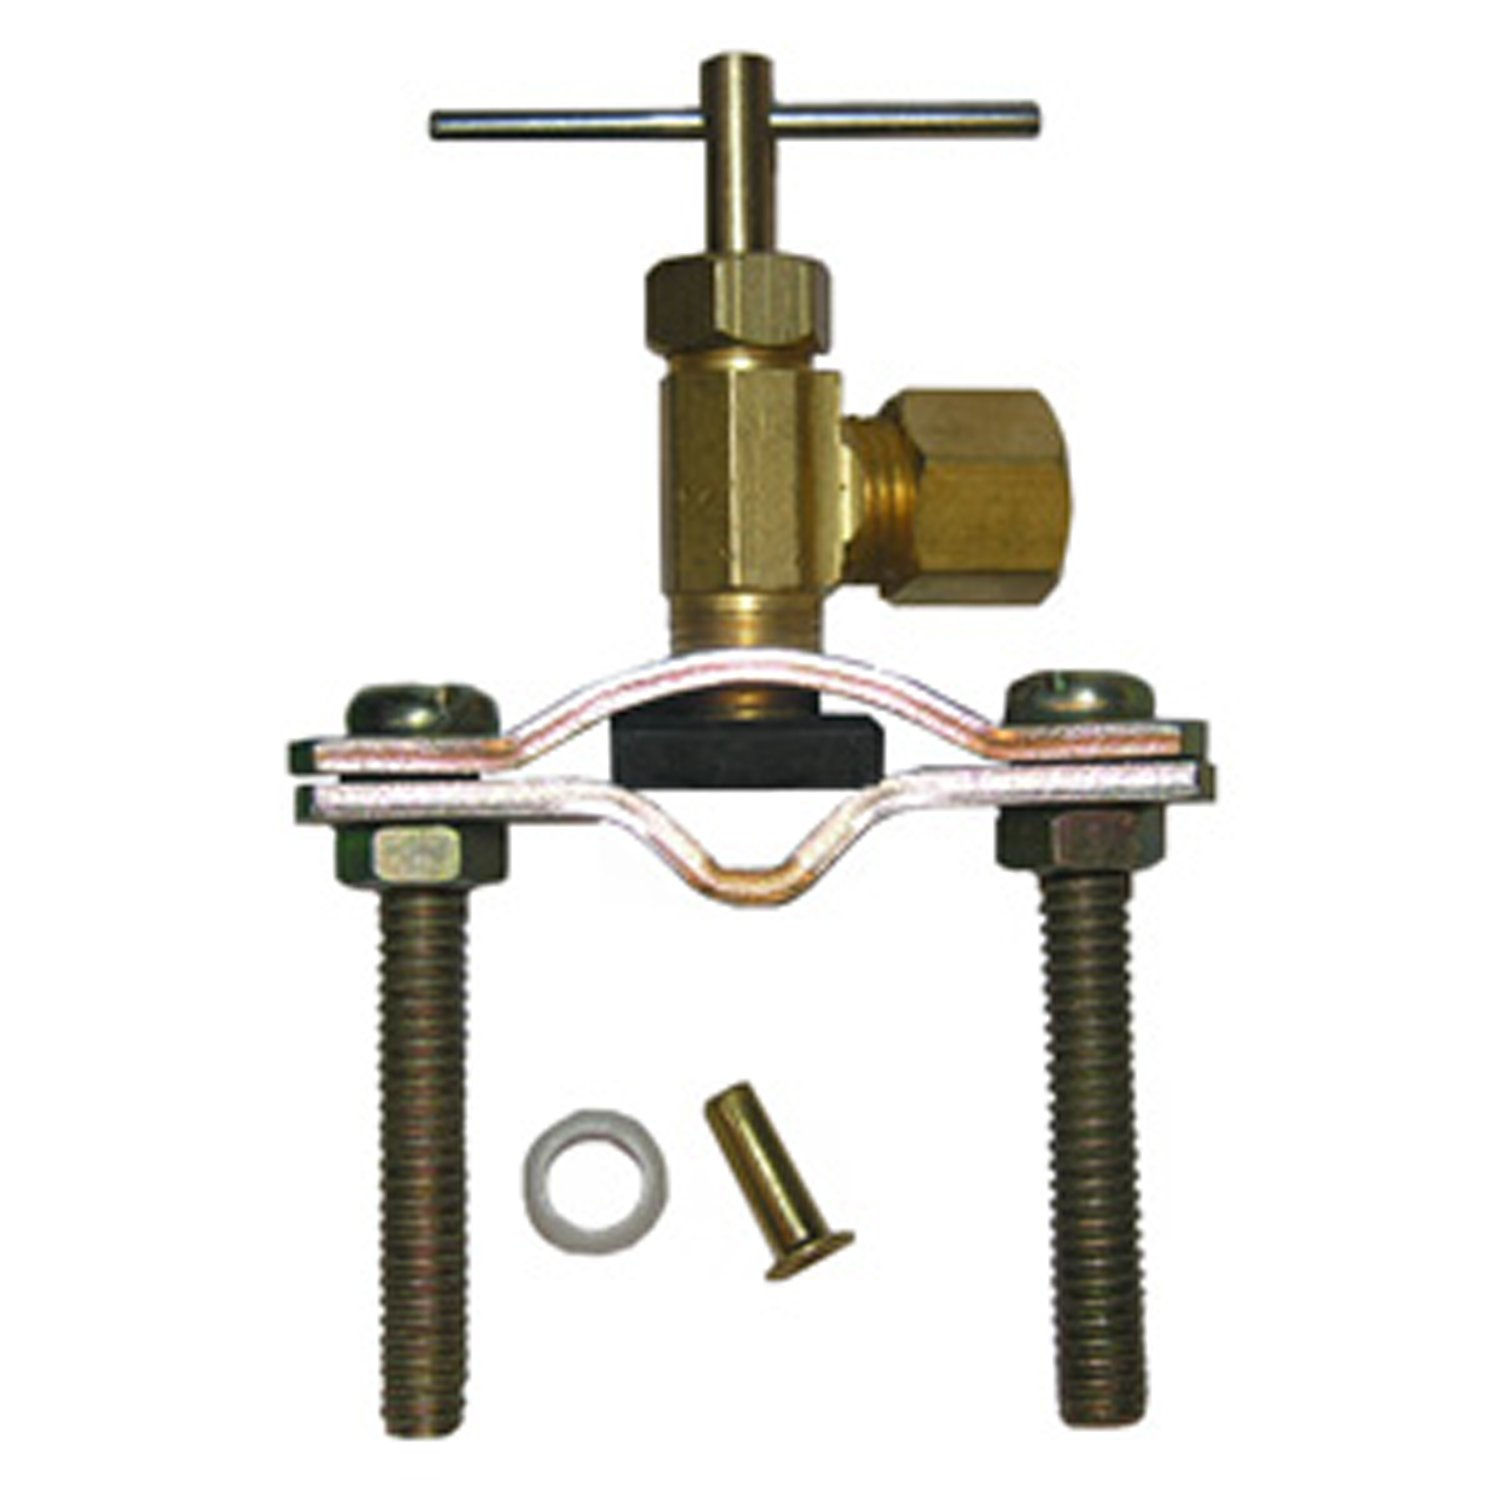 LASCO 17-0601 1/4-Inch Compression Outlet Self Tapping Brass Saddle Needle Valve